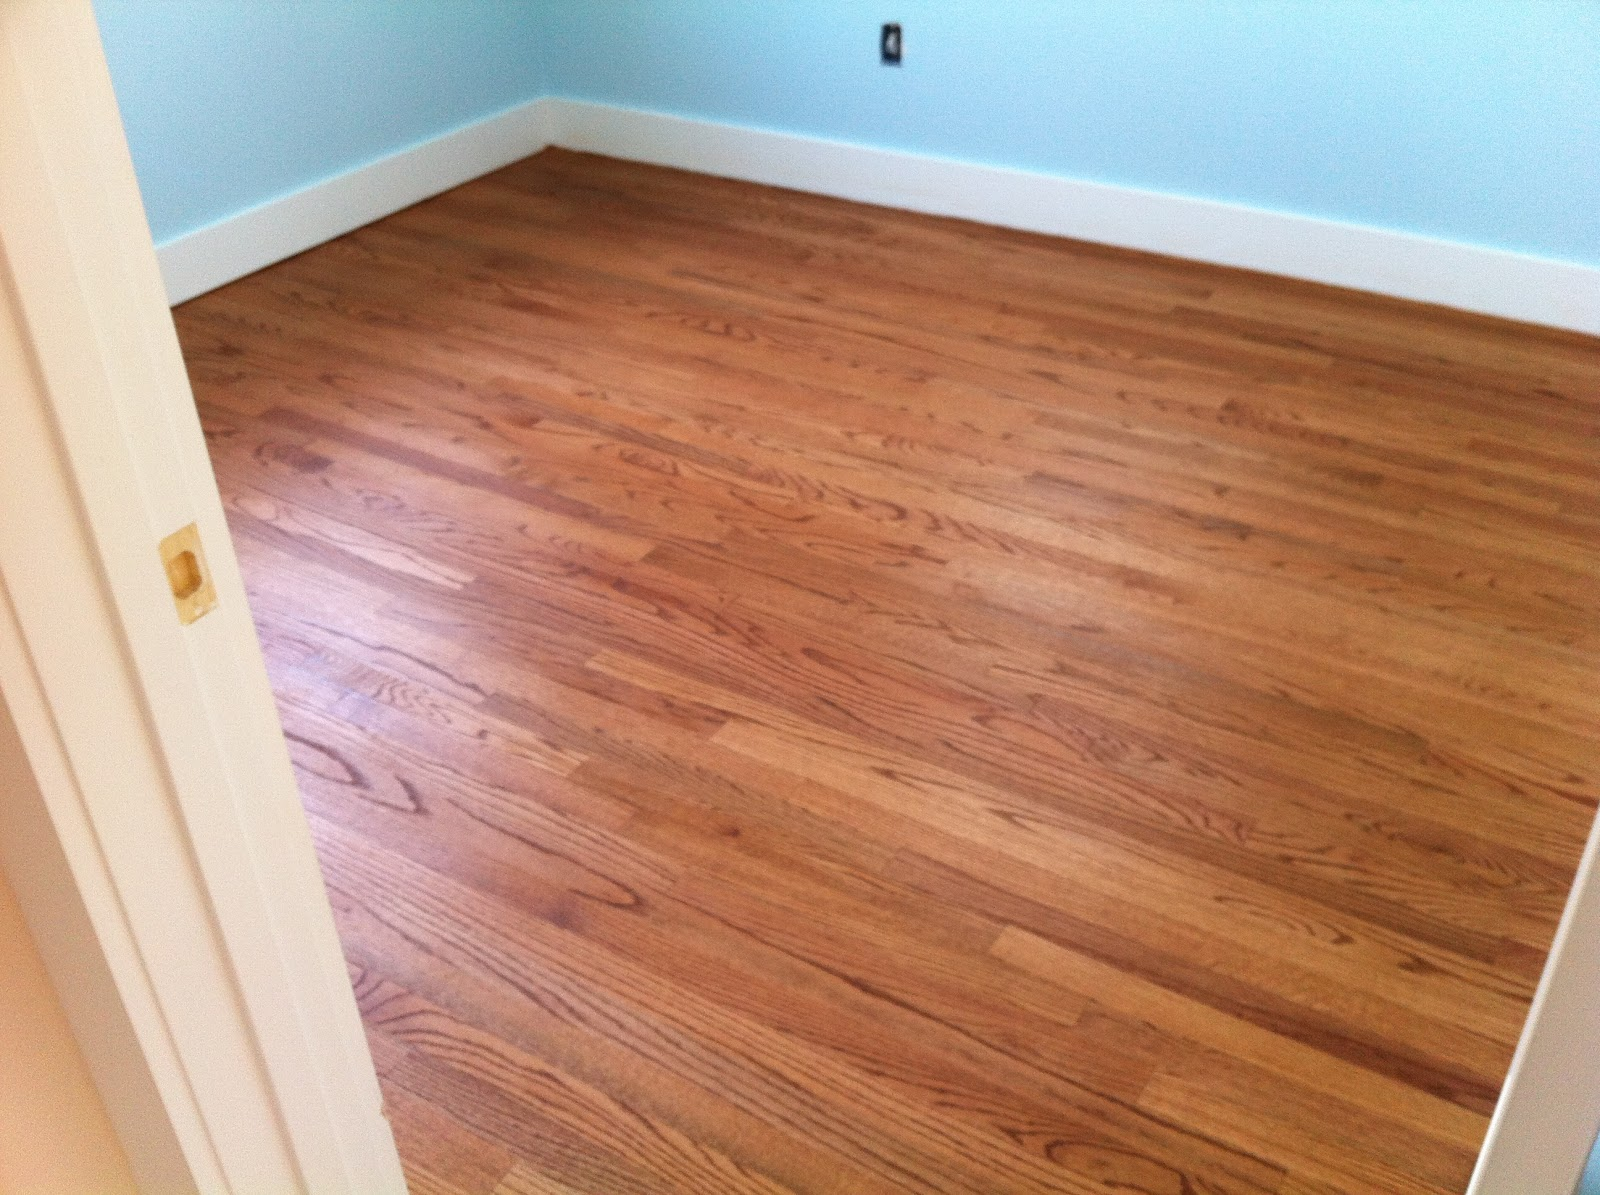 Finished Plywood Flooring ~ Crossroads on crosswoods catching up